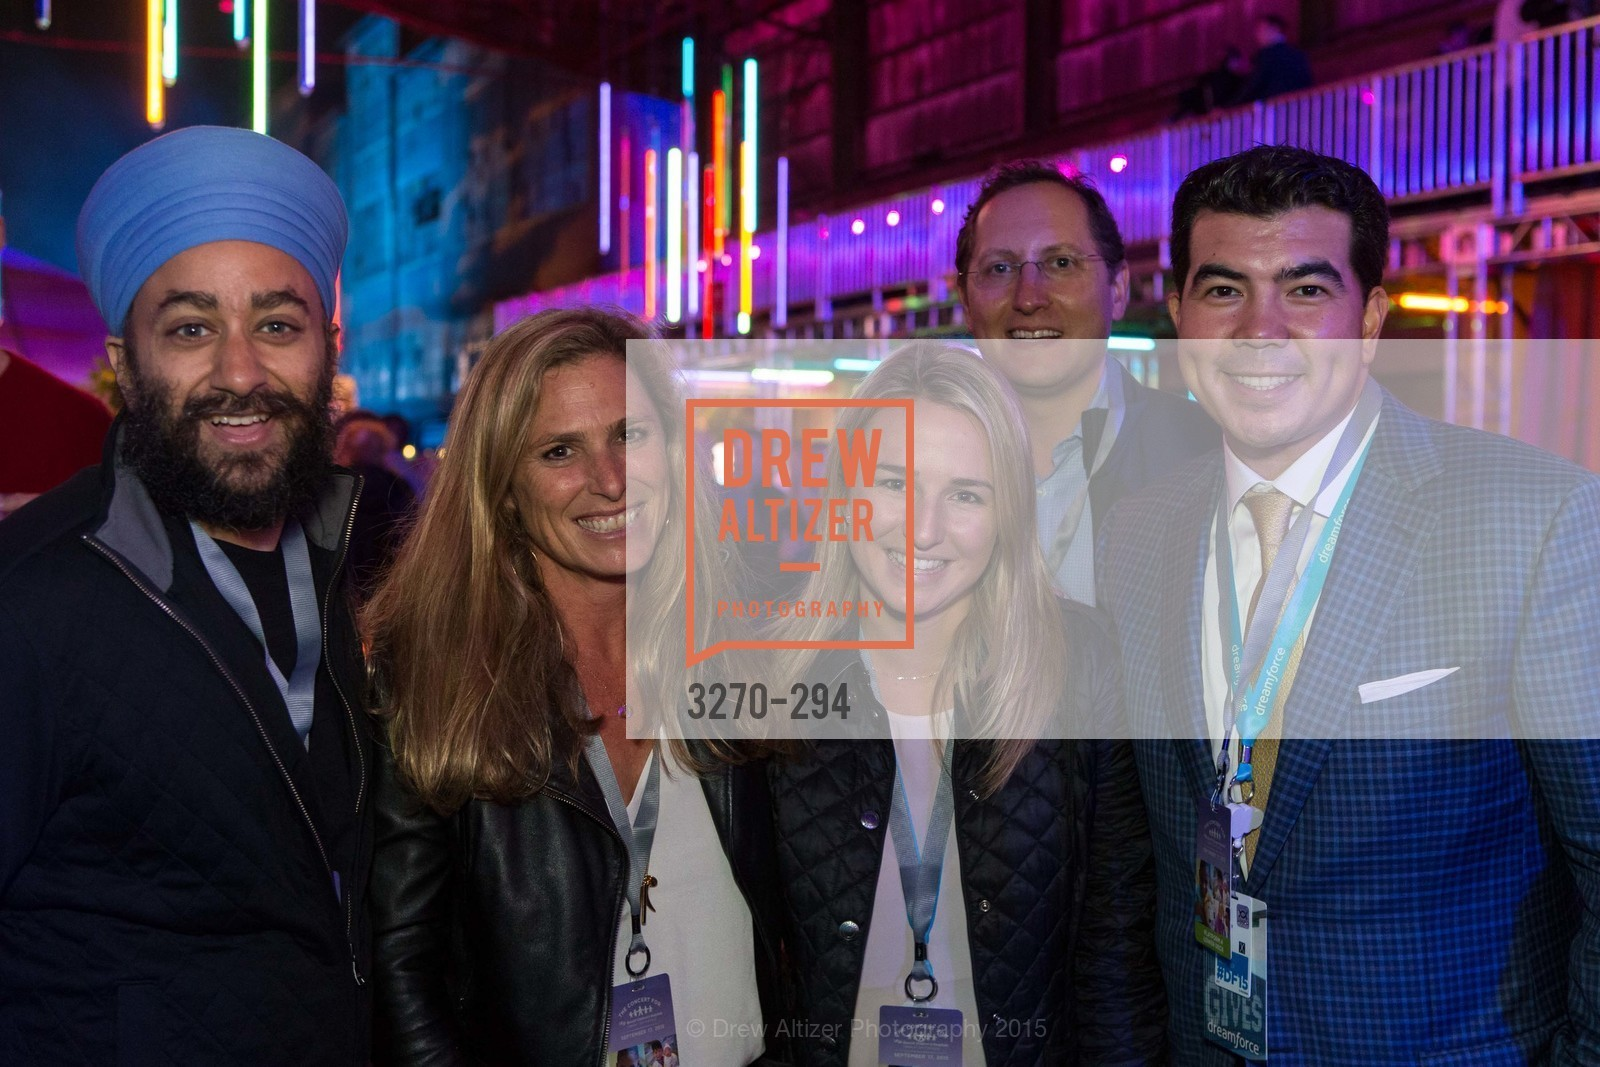 Narinder Singh, Suzanne DiBianca, Allie Befalo, Brett Rochkind, Dan Darcy, The Concert For UCSF Benioff Children's Hospital, Pier 70, September 17th, 2015,Drew Altizer, Drew Altizer Photography, full-service agency, private events, San Francisco photographer, photographer california